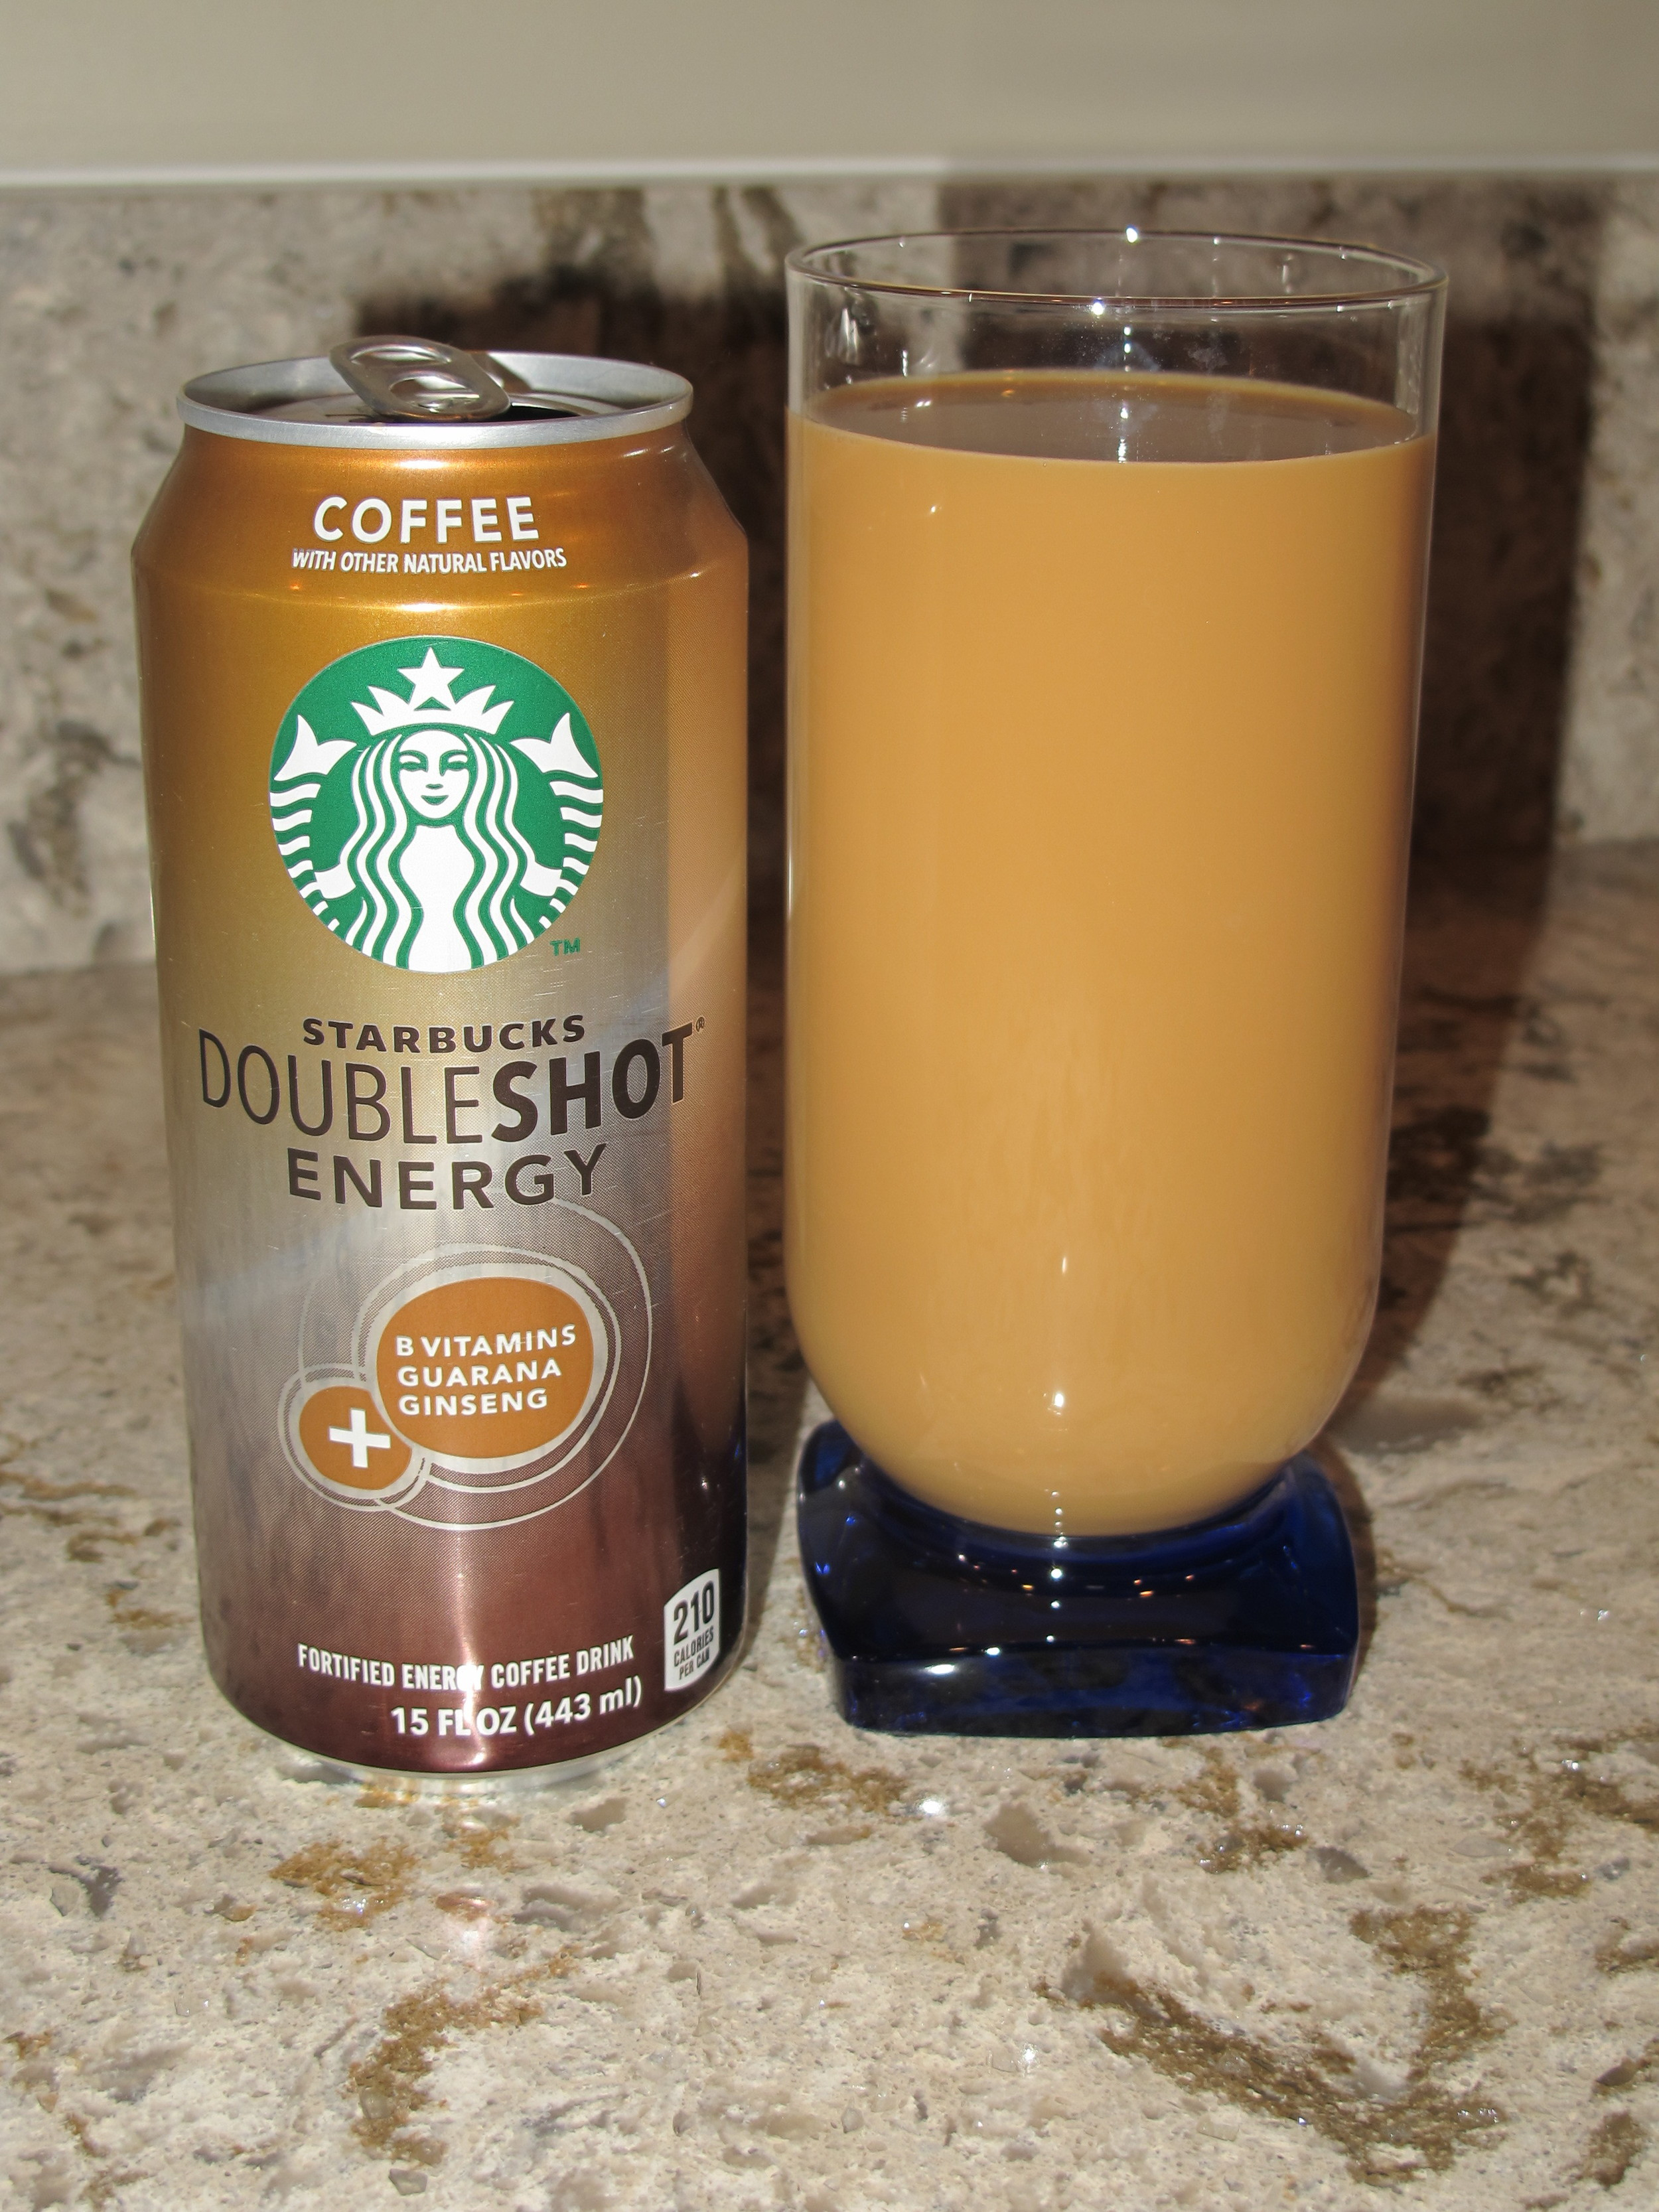 Canned Coffee 2 Starbucks Doubleshot Coffee The Search